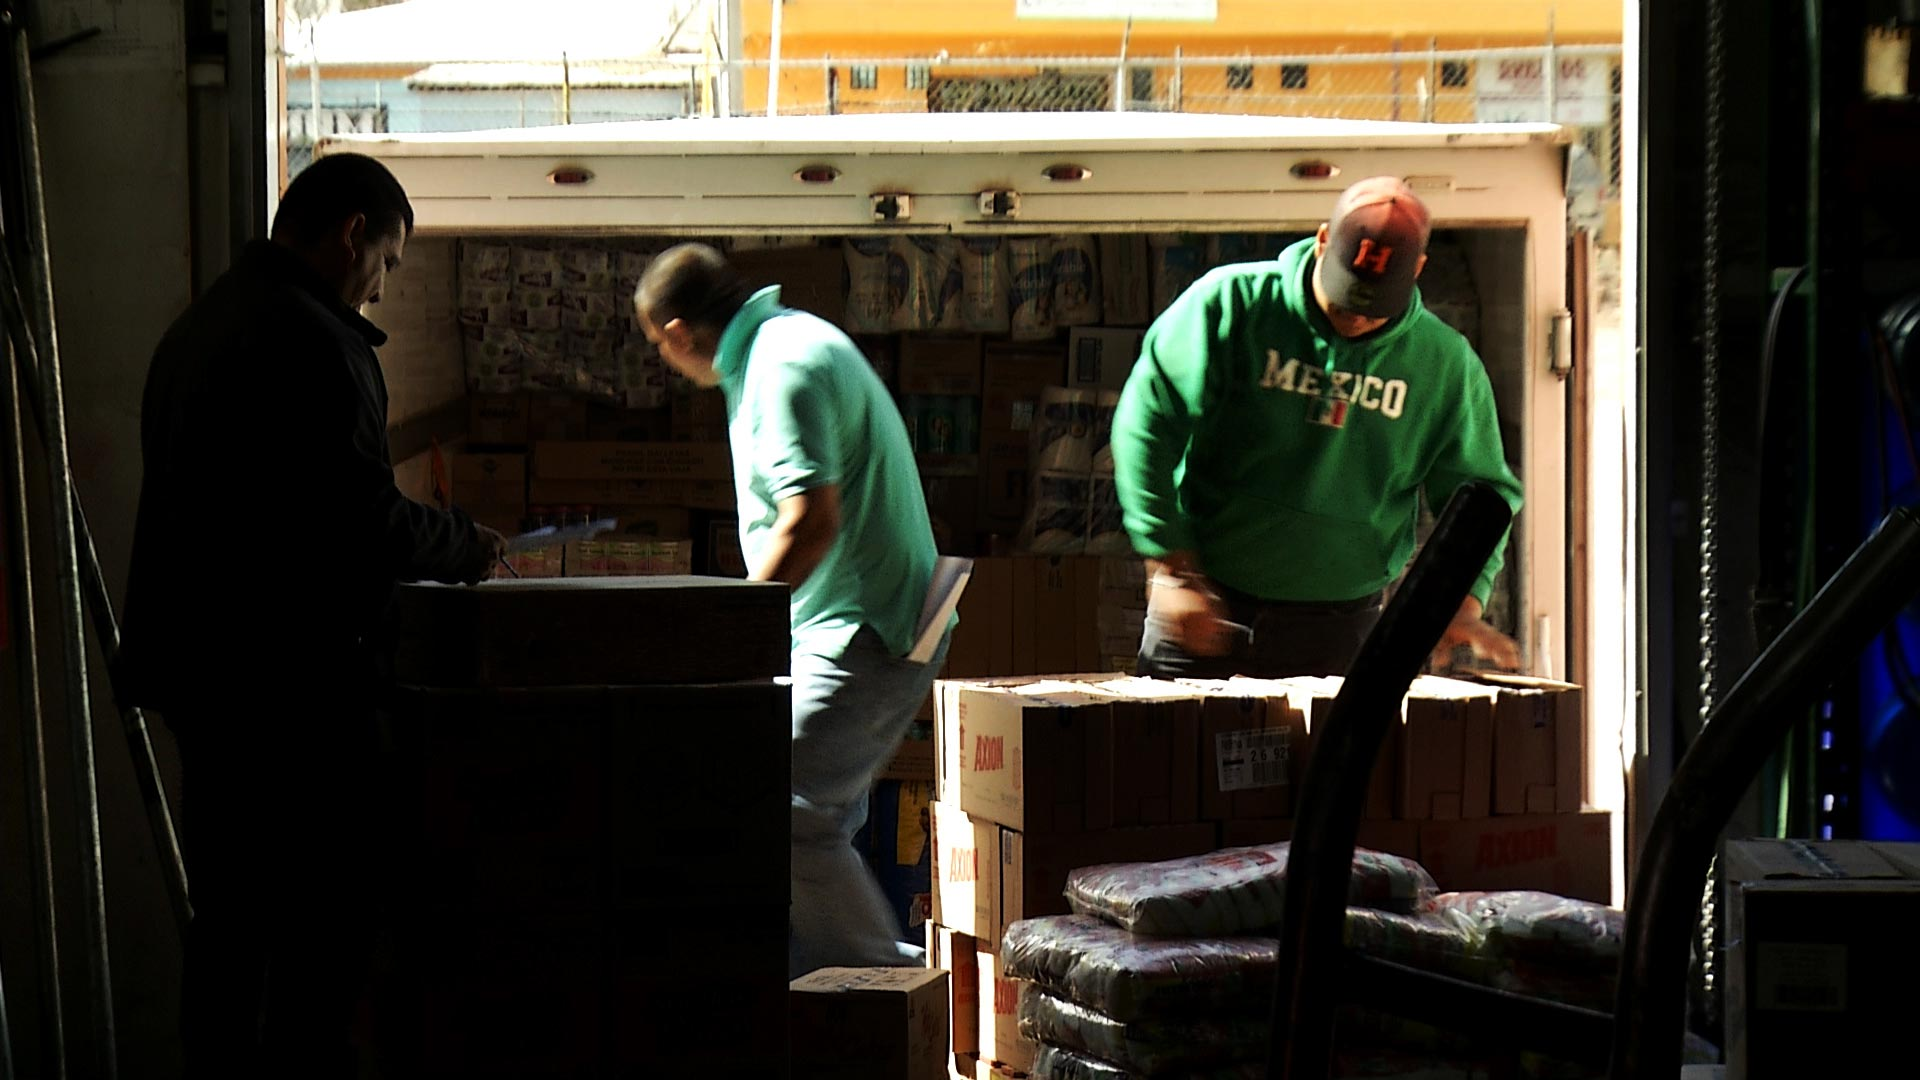 Employees unload boxes from a supply truck at CS Food Service in Nogales, Sonora on March 4, 2019.